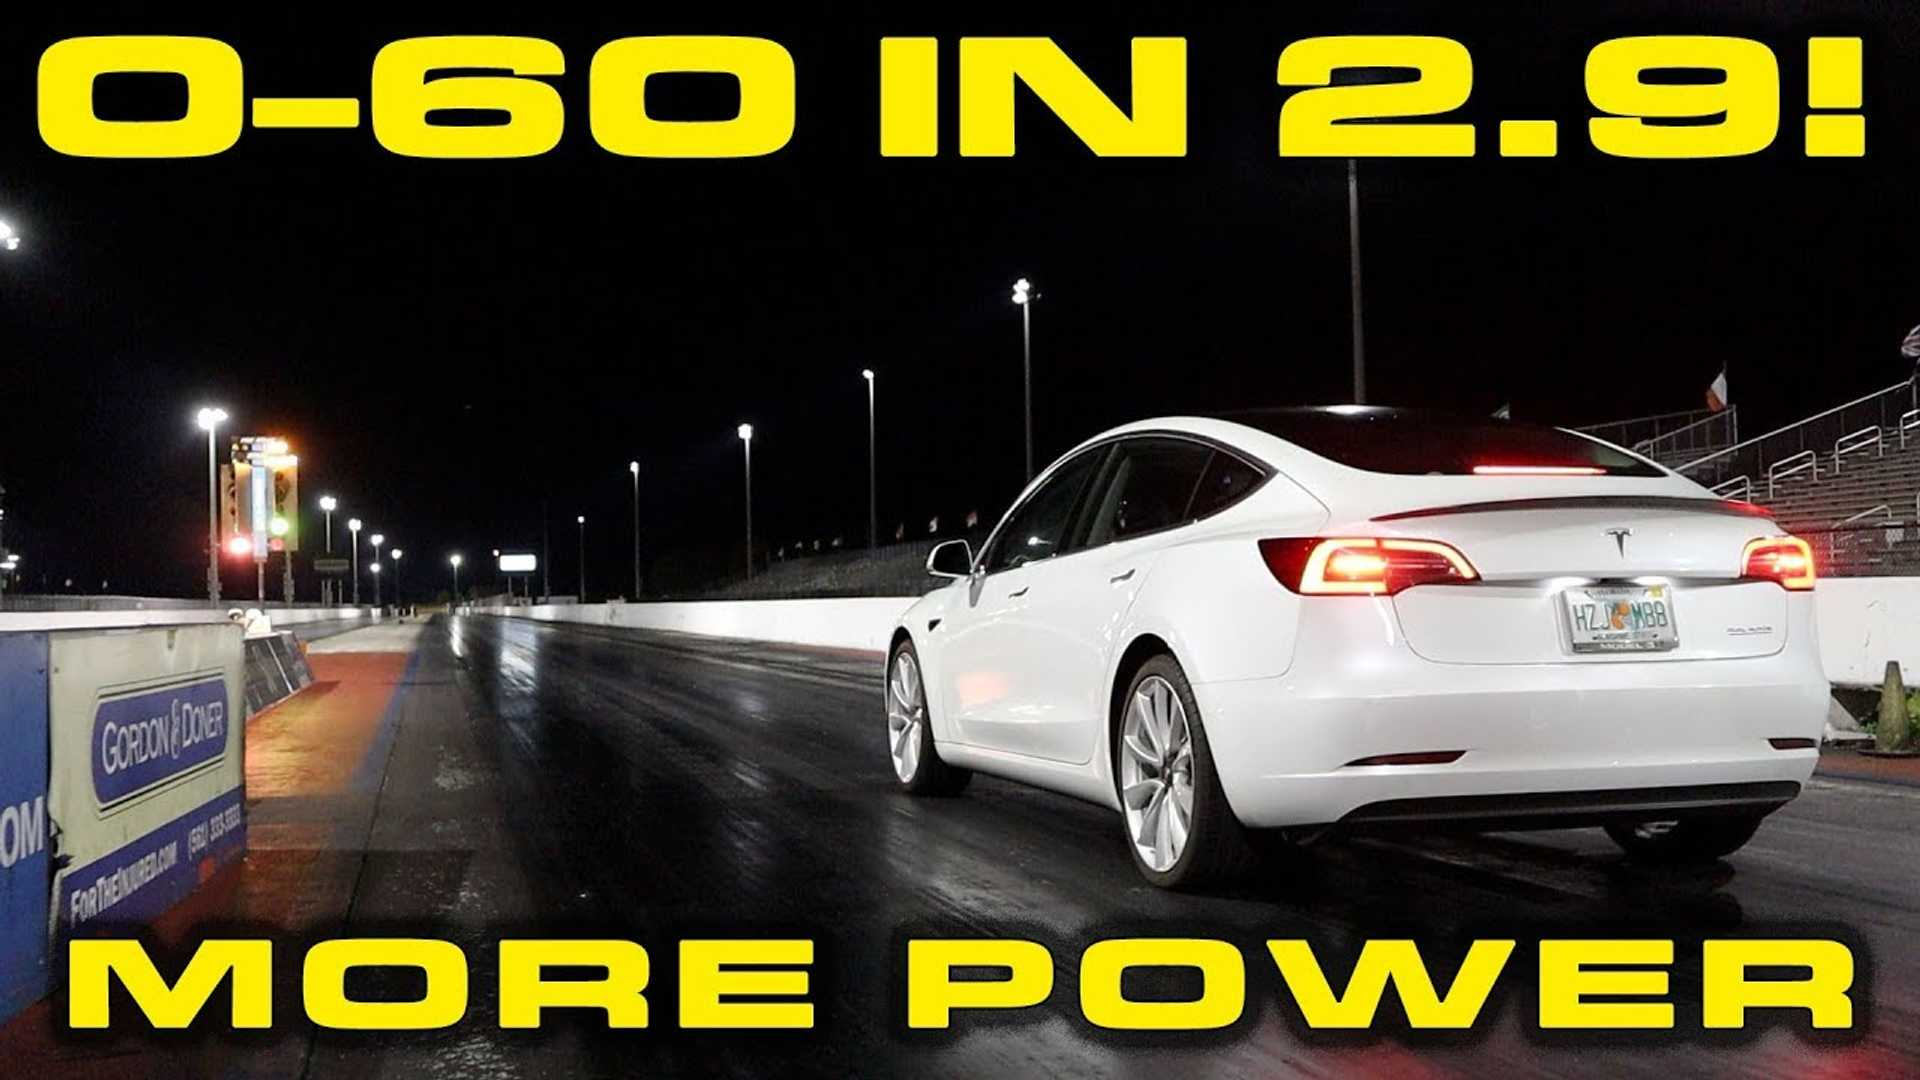 Tesla Model 3 and Model S power increase tests: Model 3 0-60 in 2.9s